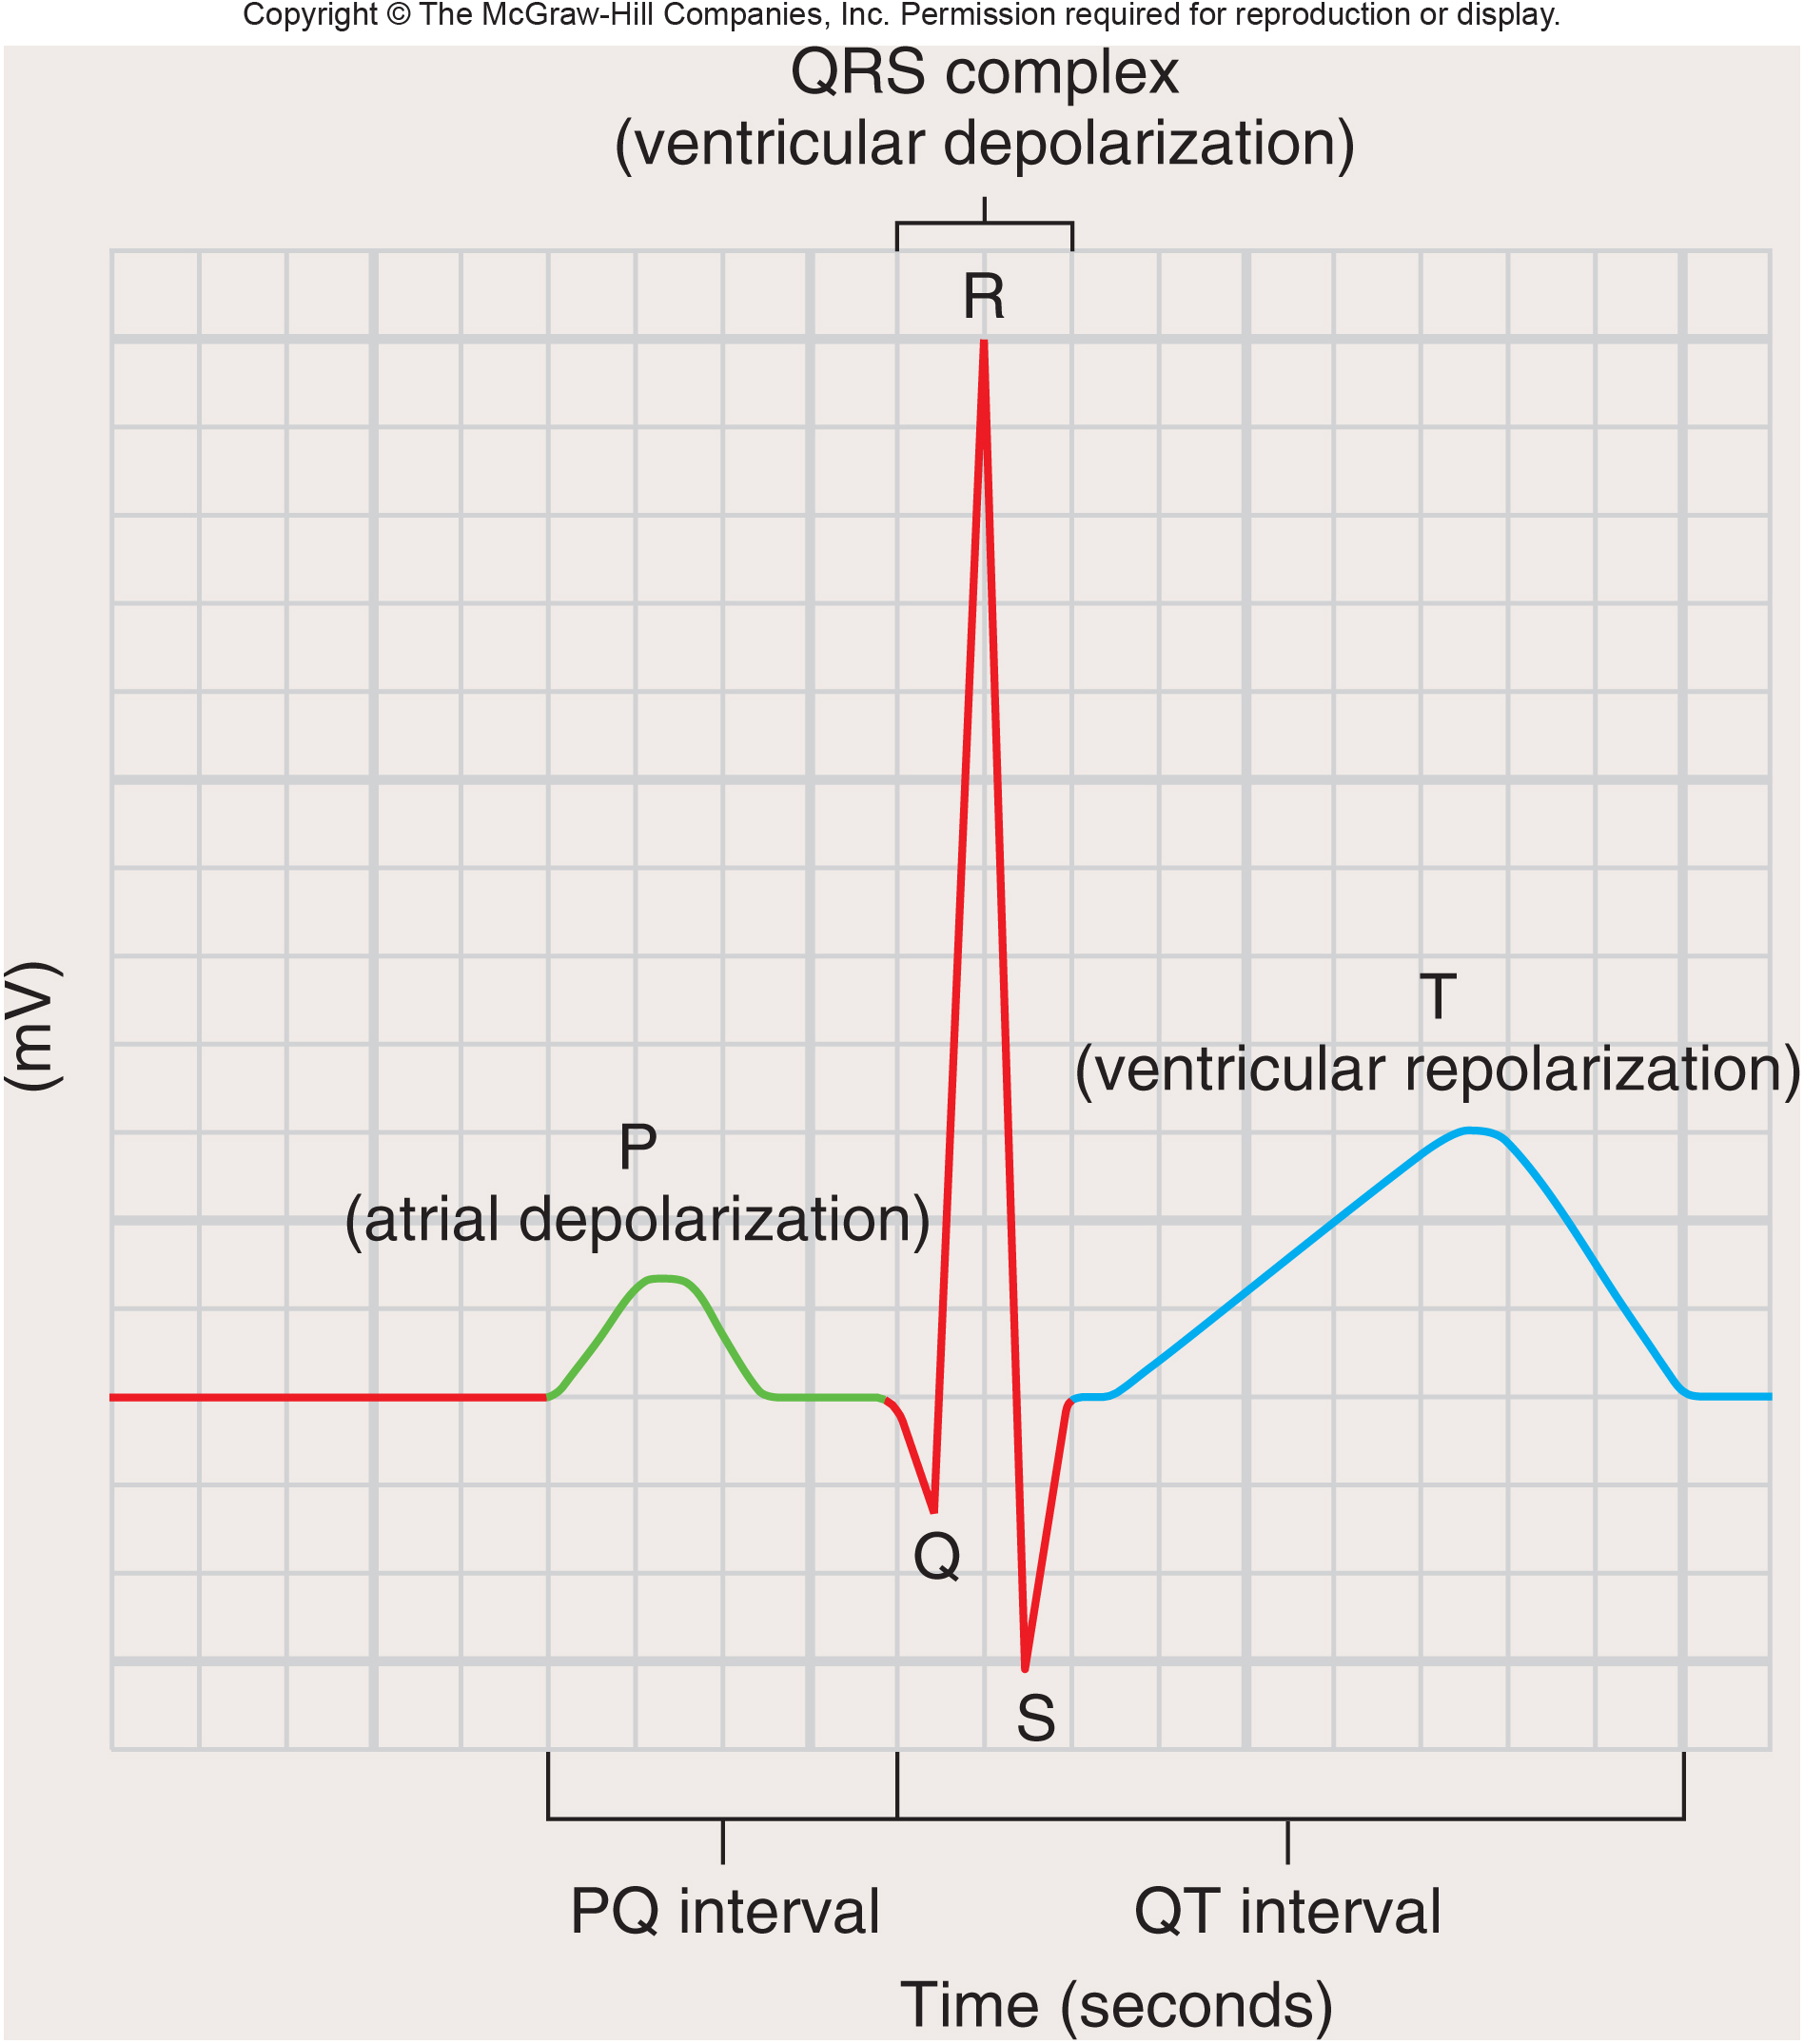 Conduction system and pacemaker an ecg is a record of electrical changes during each cardiac cycle pooptronica